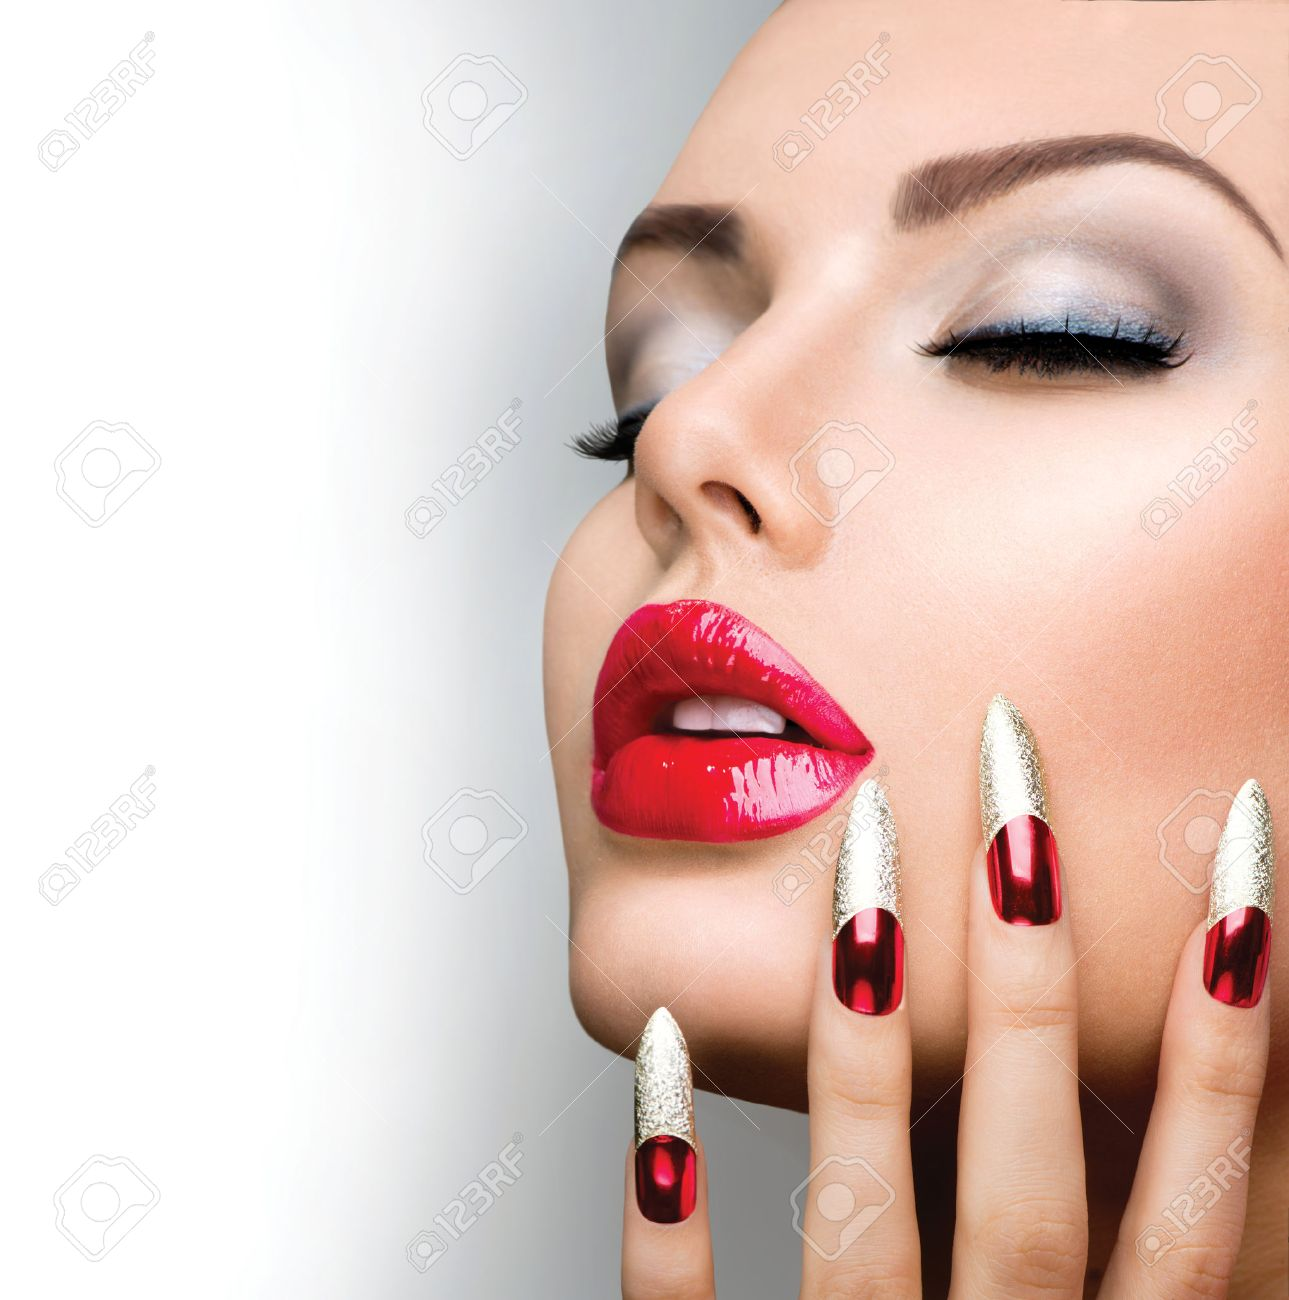 Fashion Beauty Model Girl Manicure And Make-up Nail Art Stock Photo ...